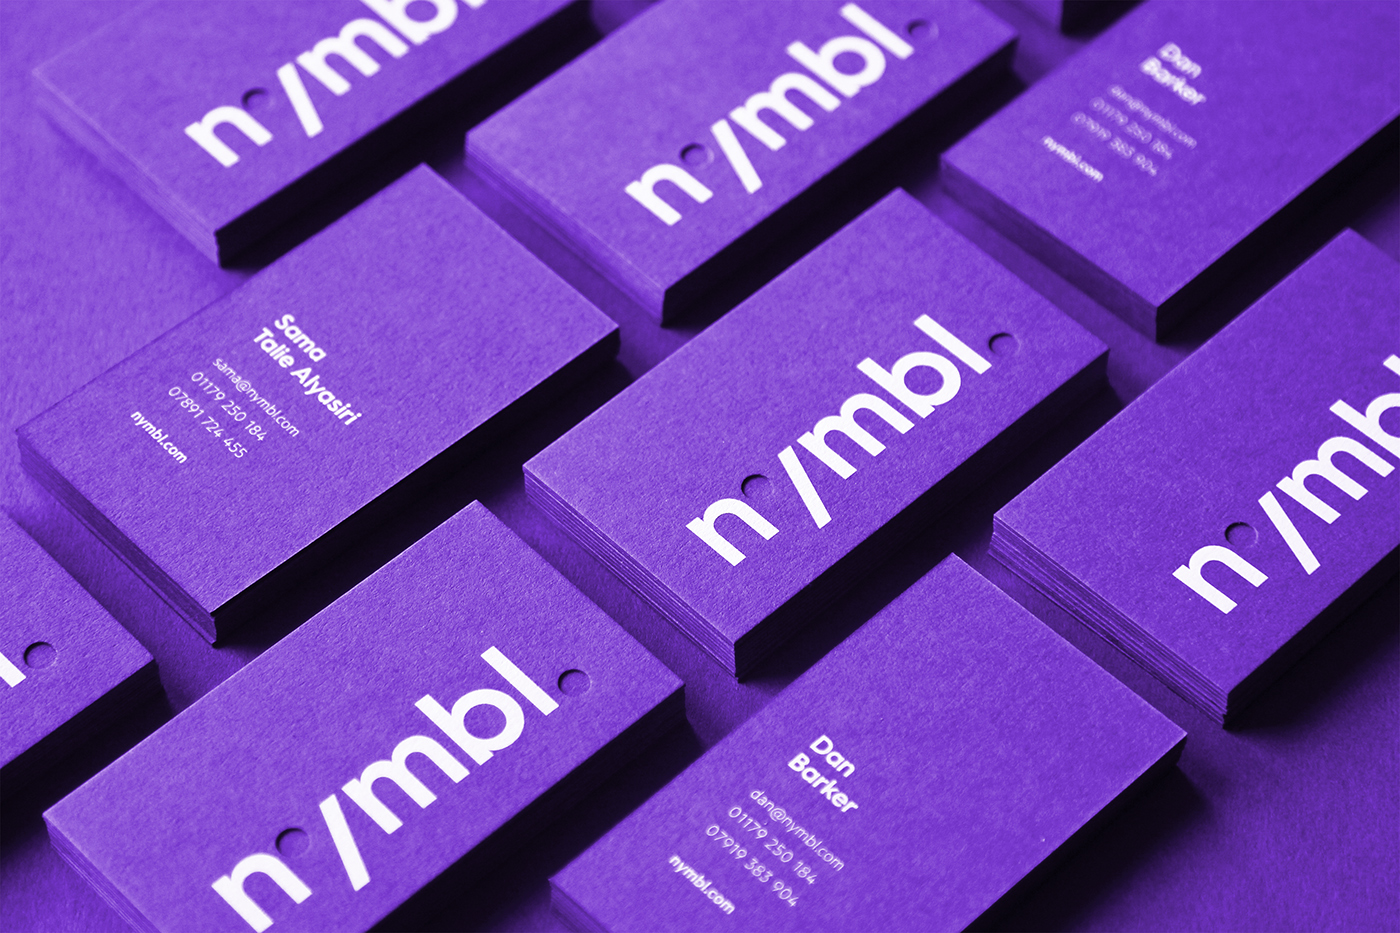 19 clever business card designs easyprint blog behance david robinsonbig fan nymbl colourmoves